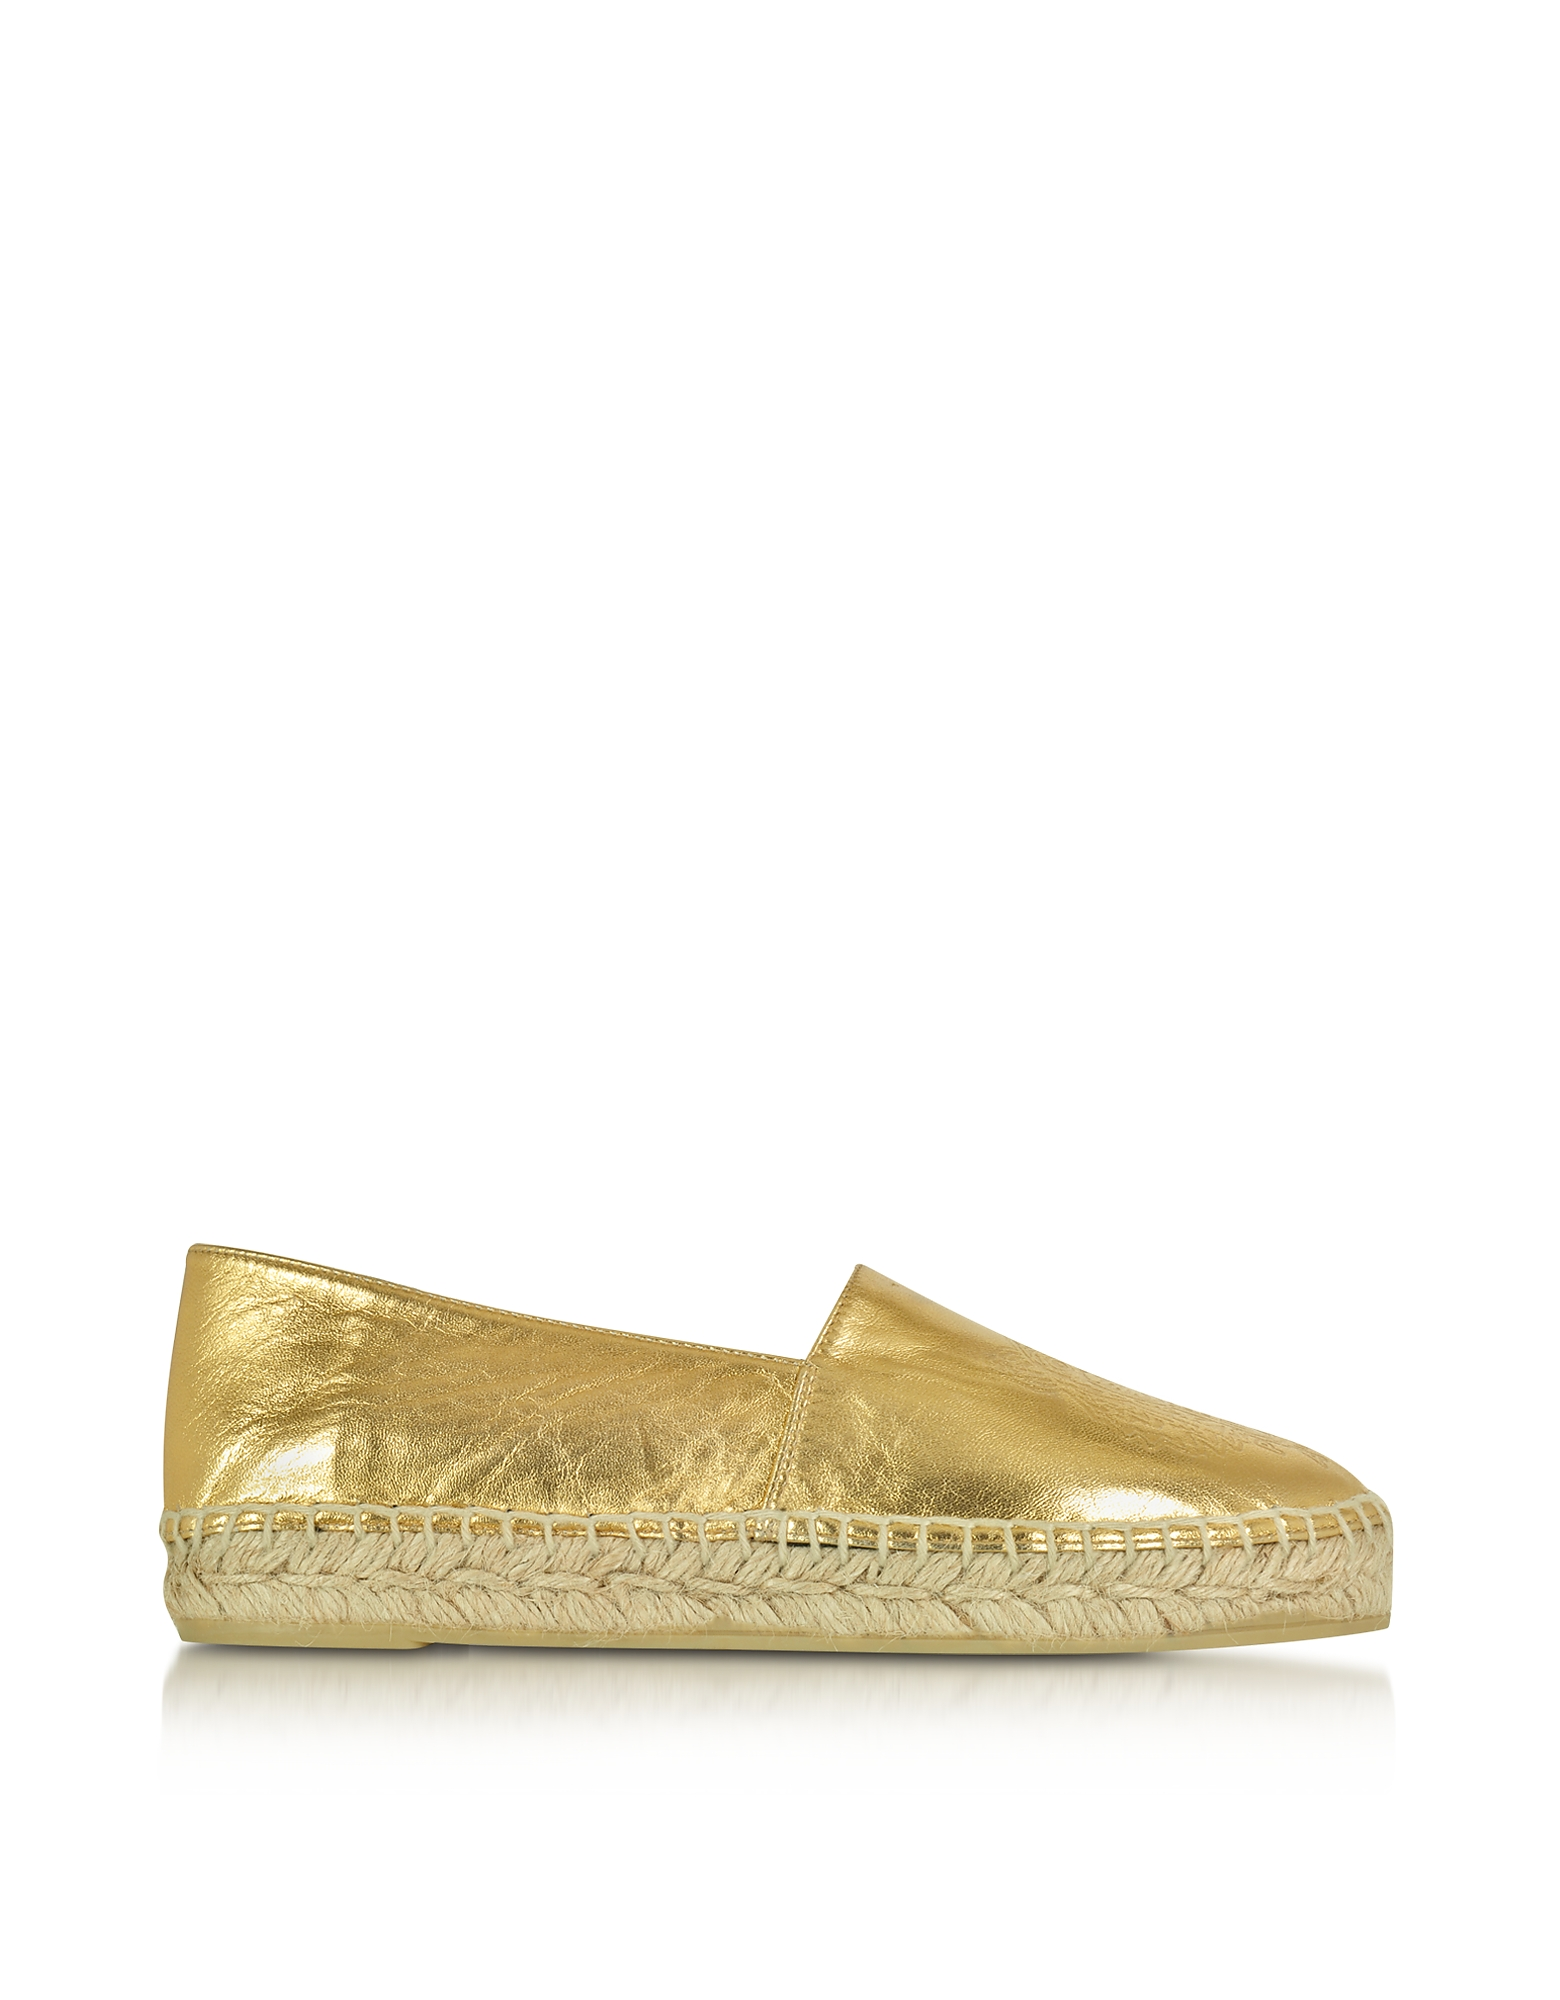 Kenzo Shoes, Gold Laminated Leather Tiger Espadrilles